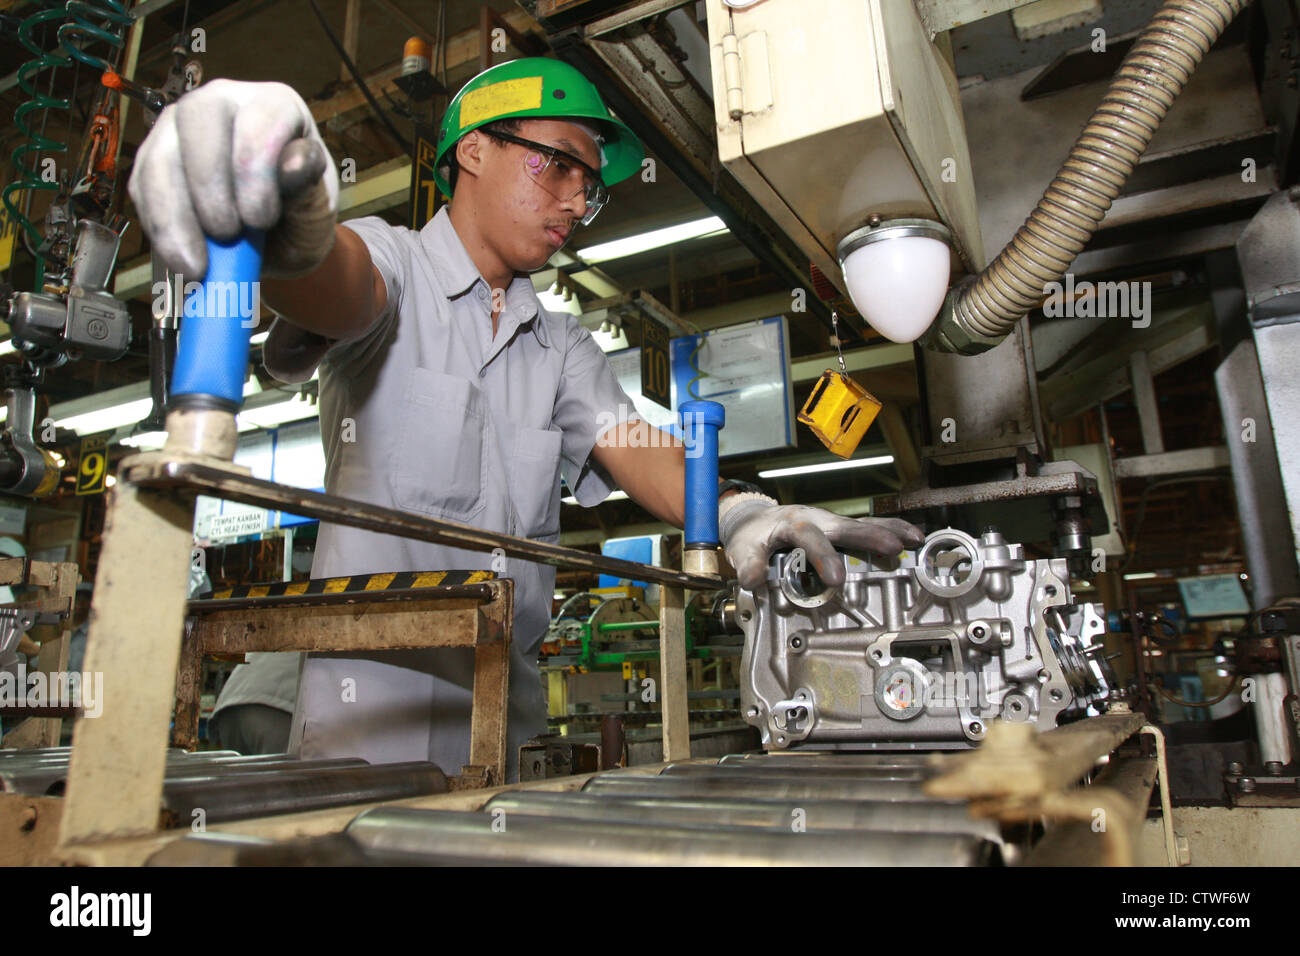 A worker assemble the machine in a factory - Stock Image